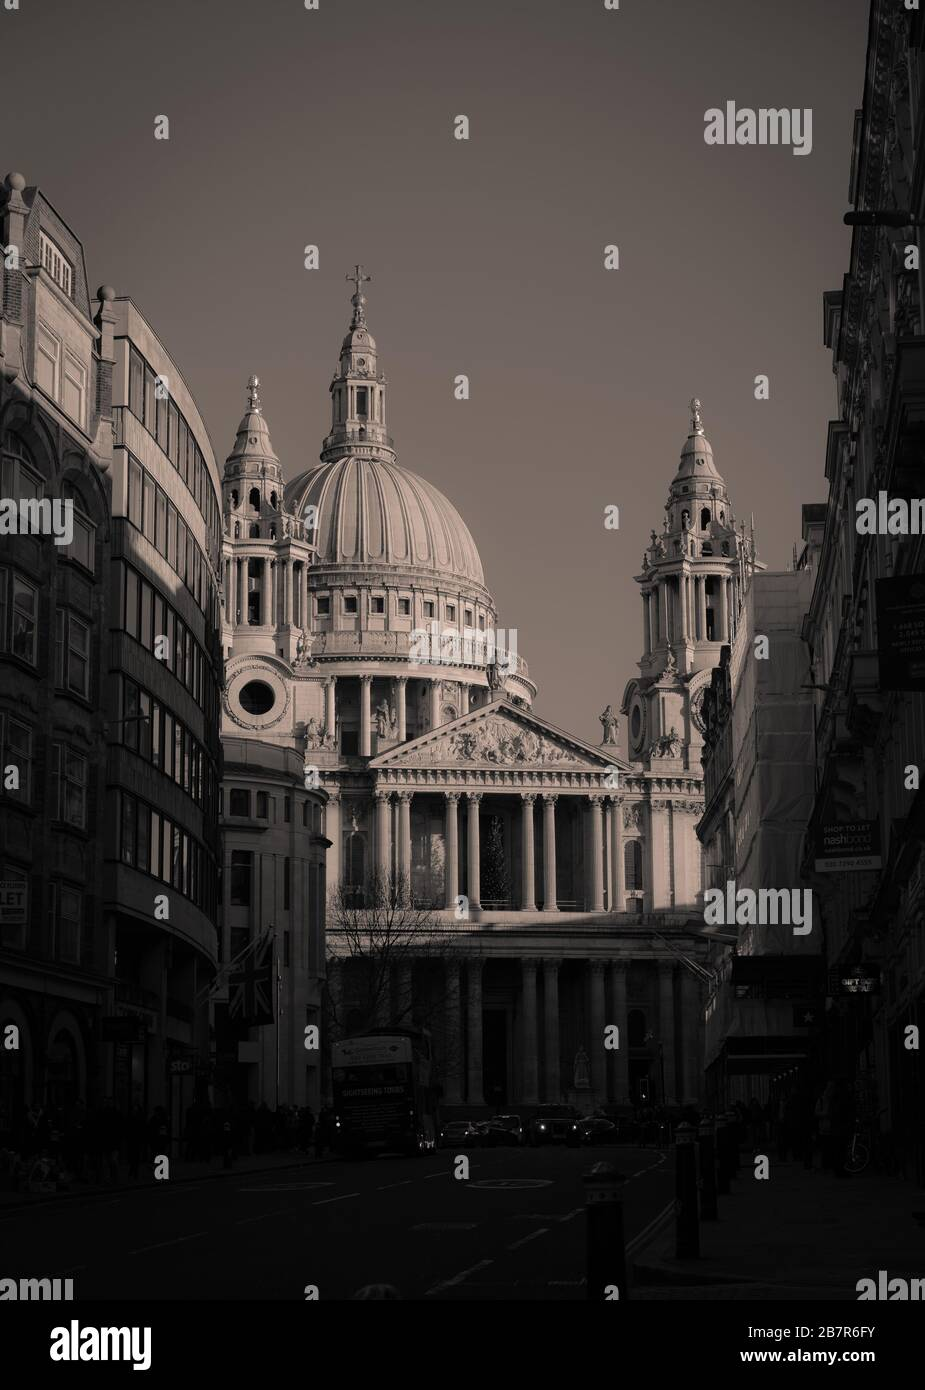 The Christmas of St. Paul's Cathedral, London,  England, UK (2019) Stock Photo